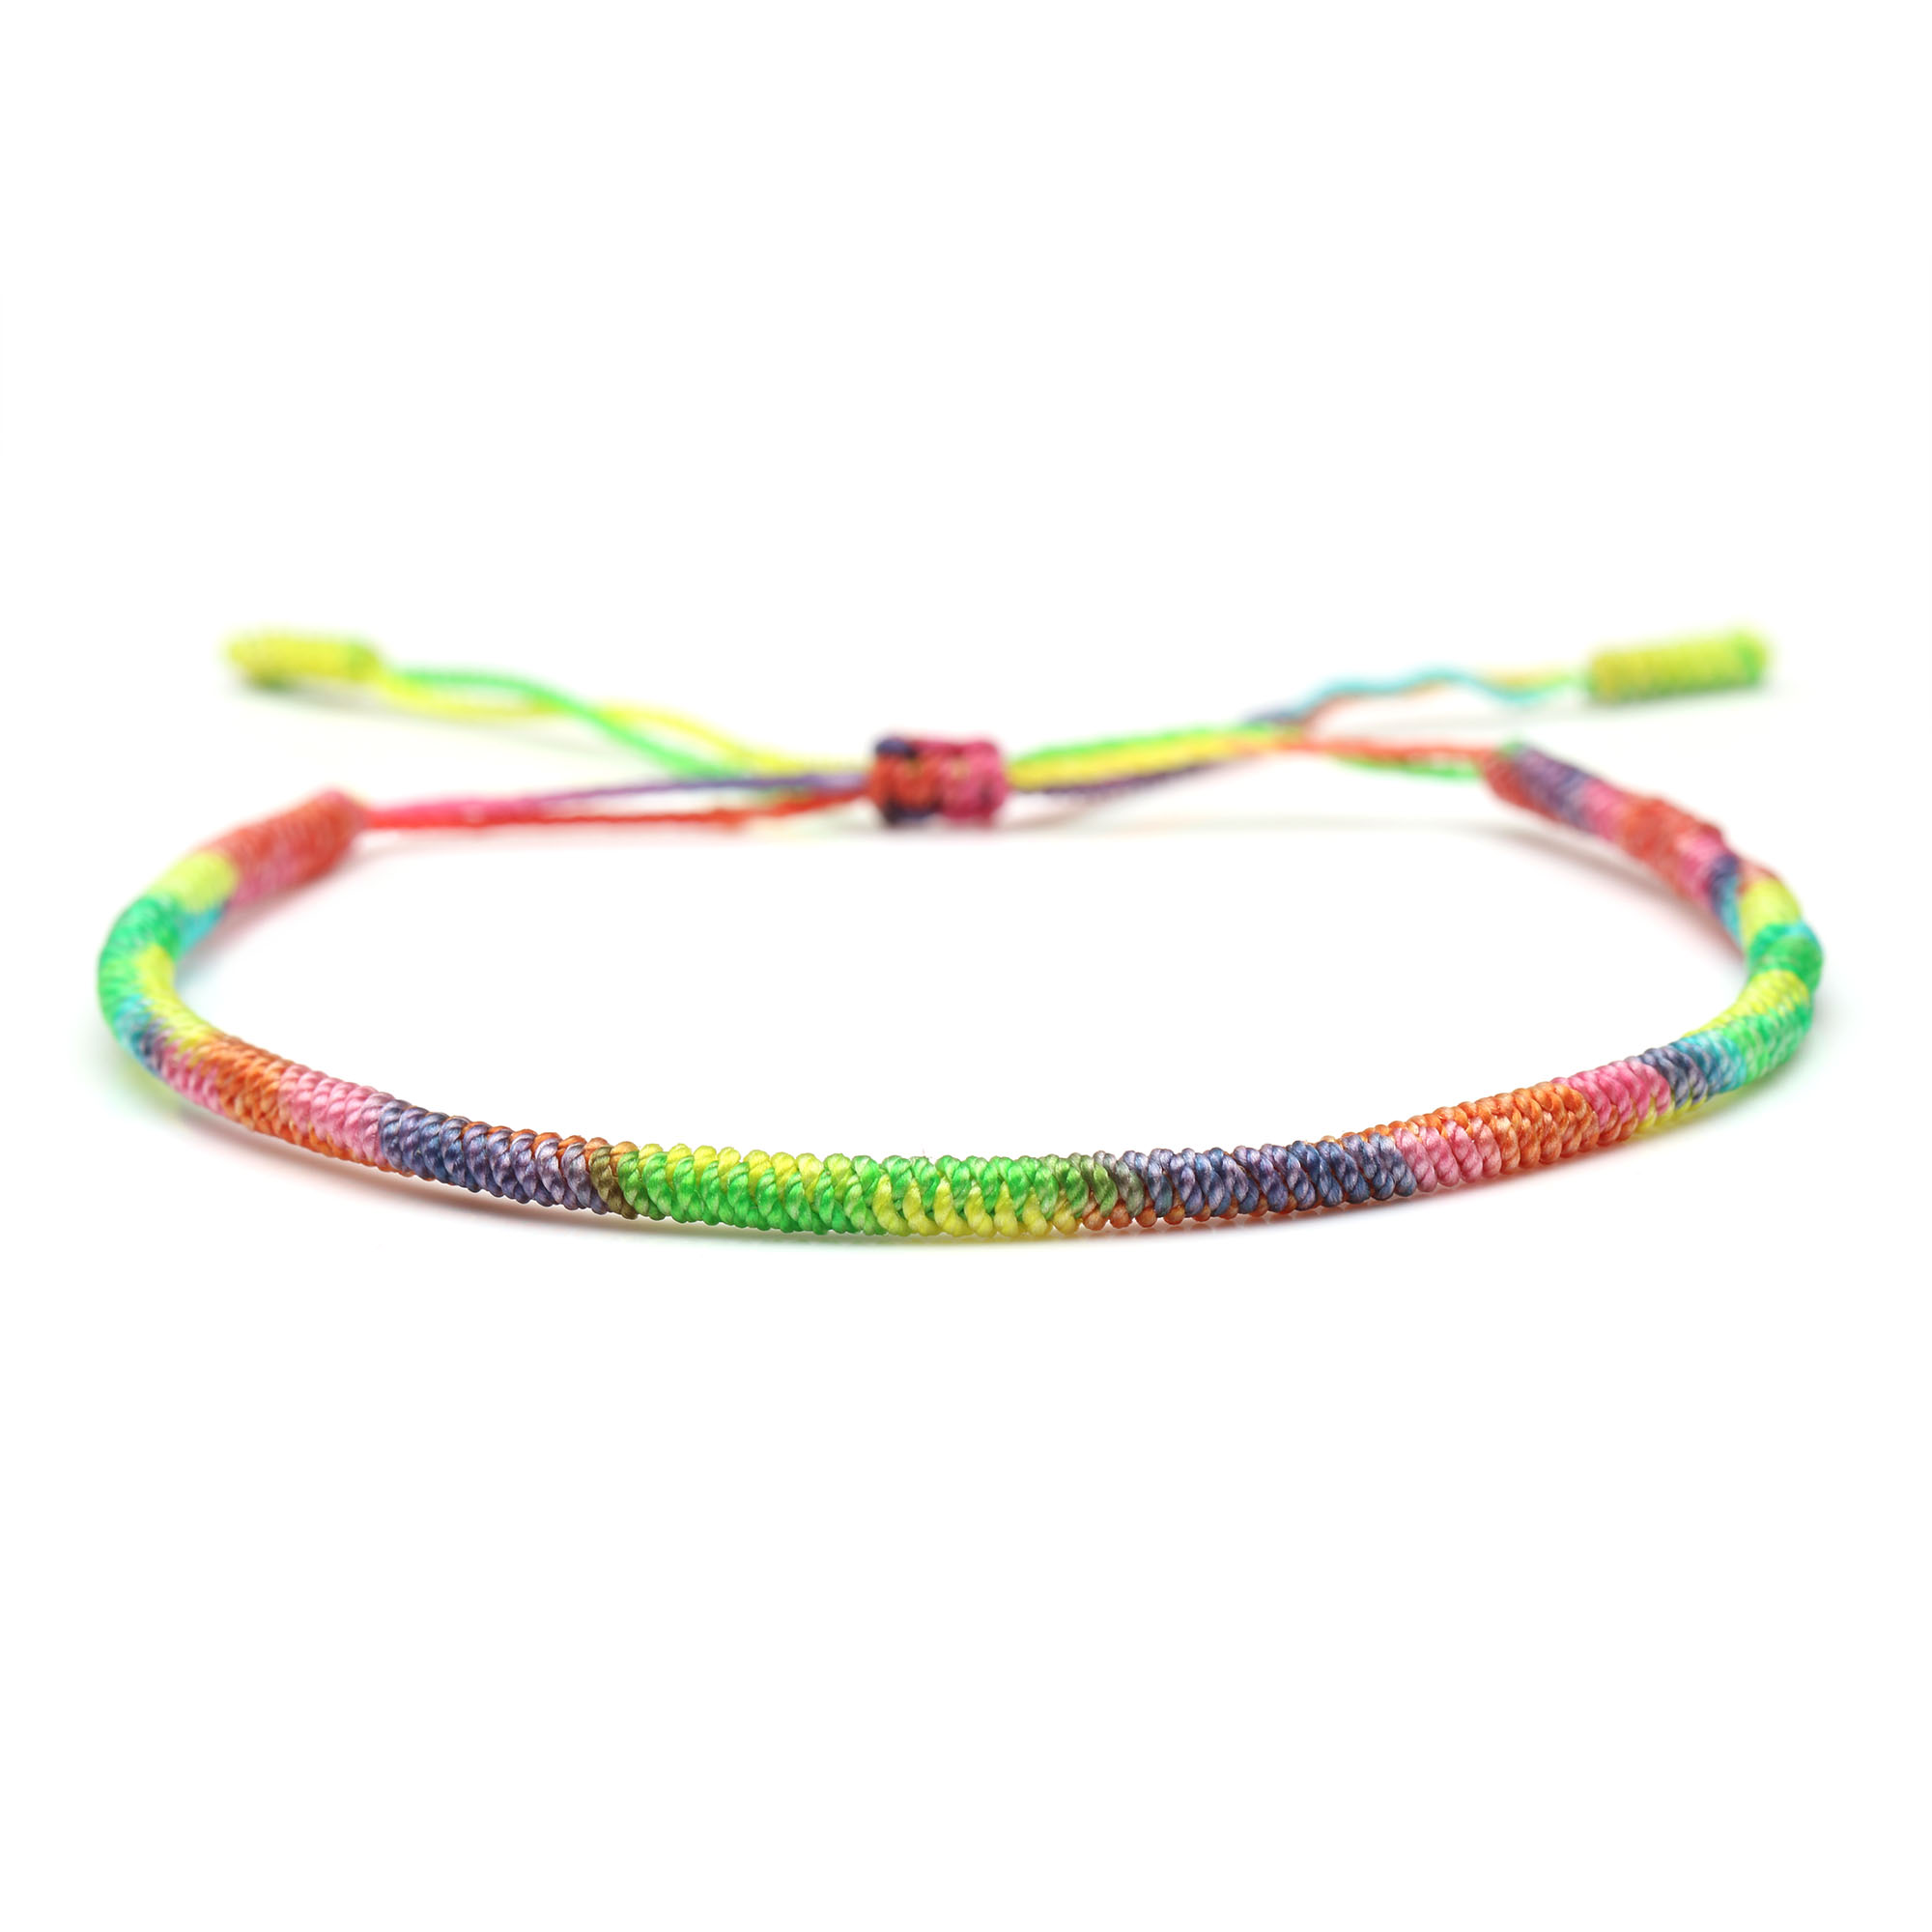 Tibetan Buddhist Lucky Knot Gradient Color Handmade Bracelet 2019 New Fashion Colorful String Hand Knotted Friendship Bracelets